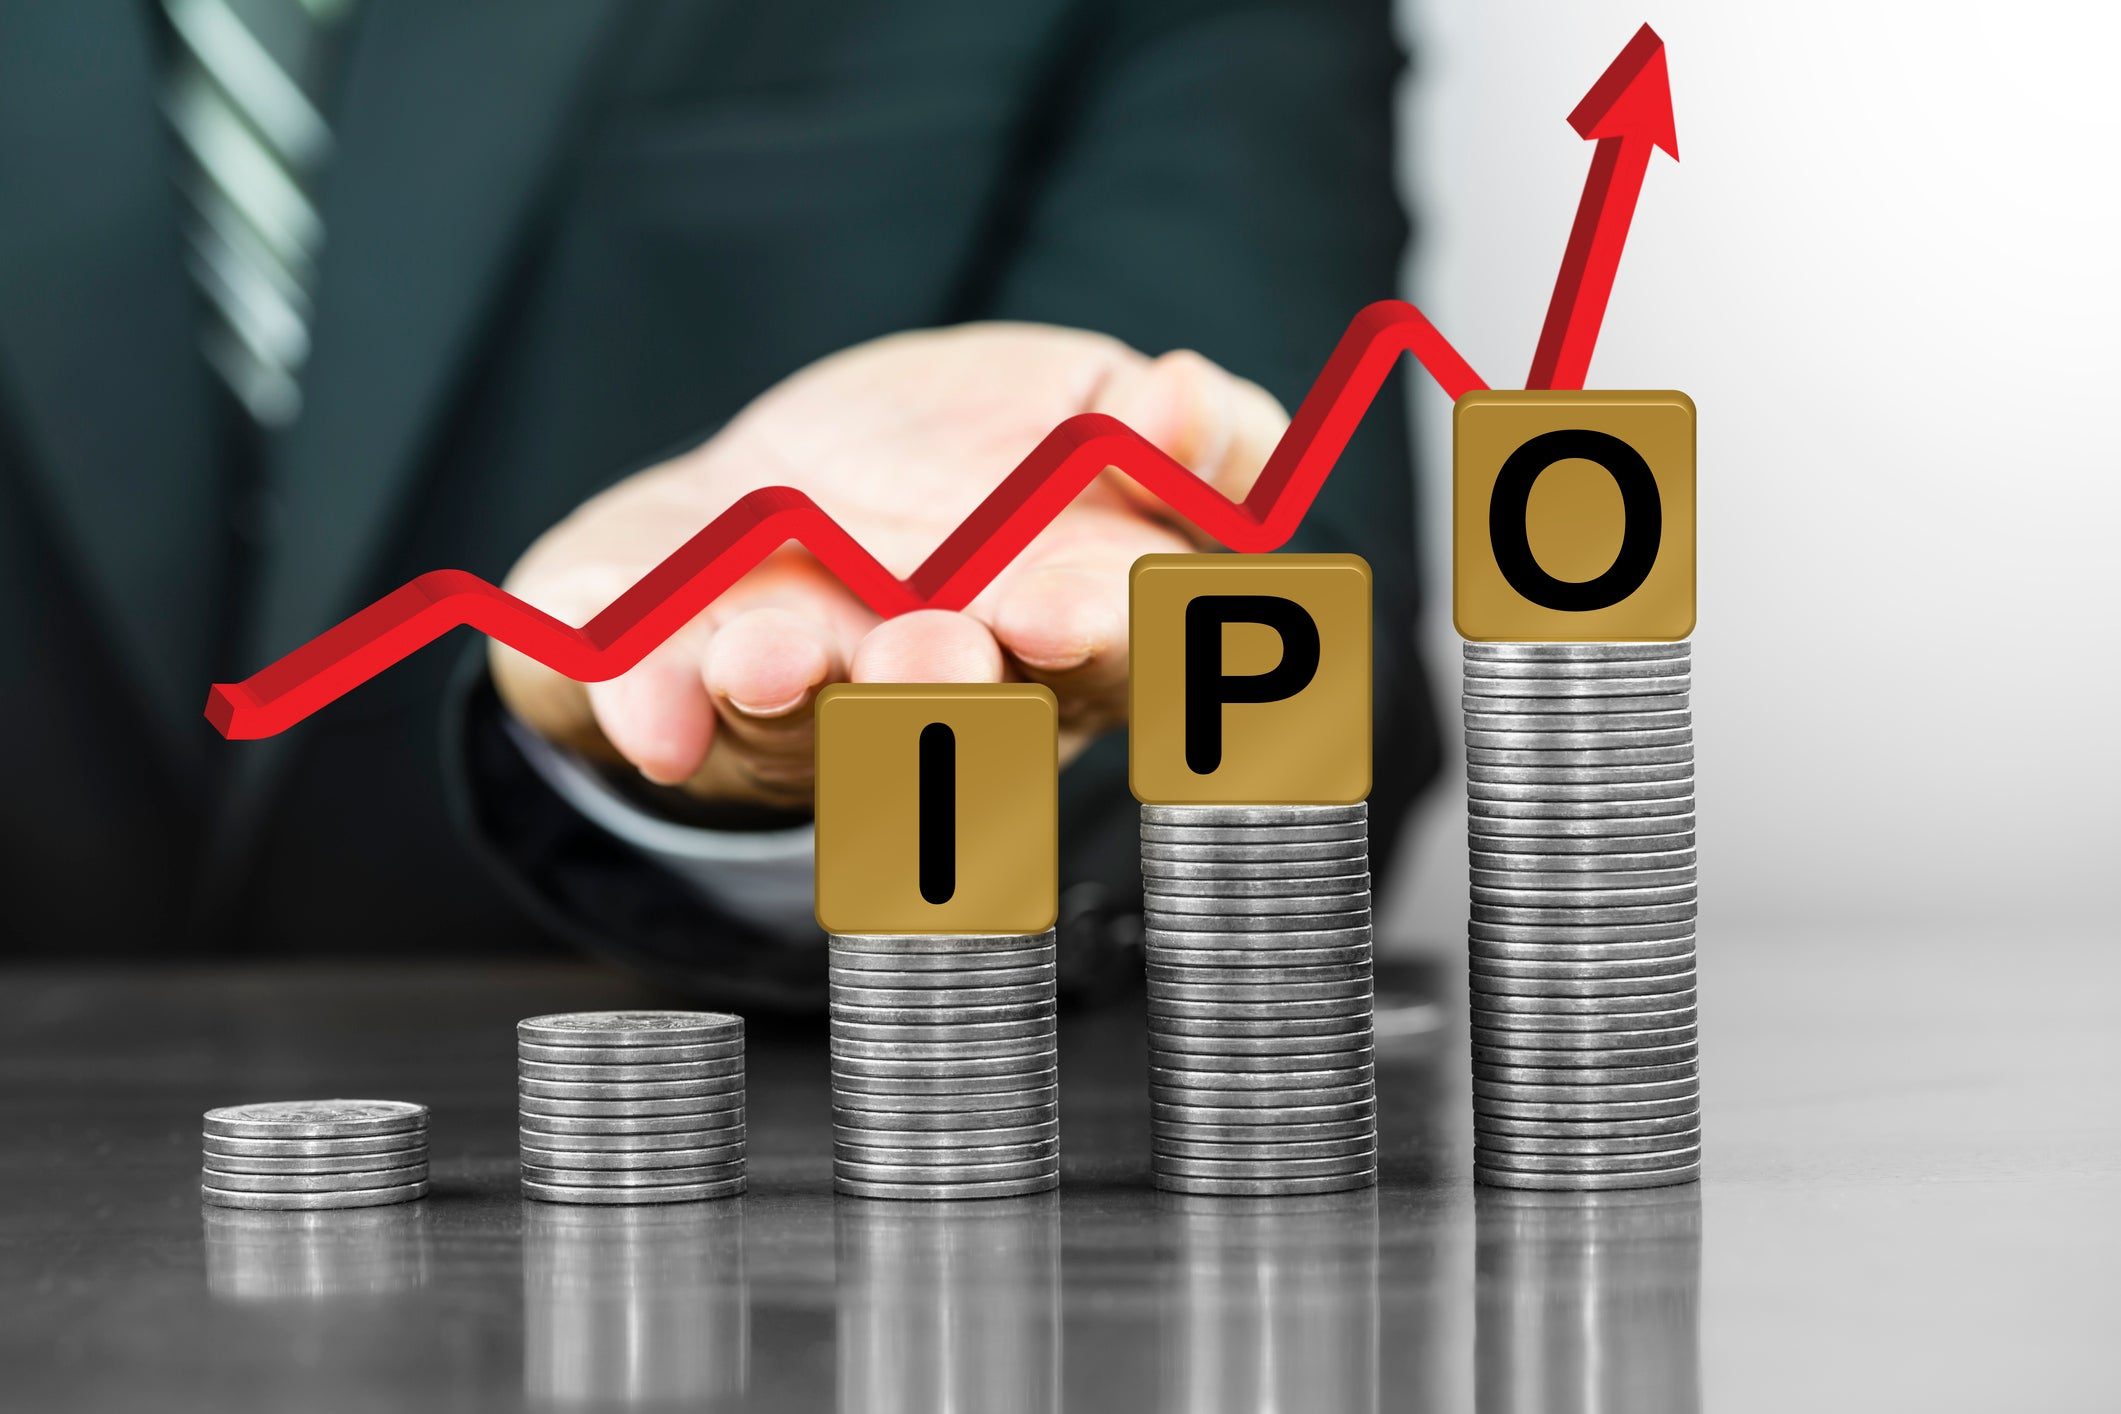 3 Hot IPO Stocks to Buy in January